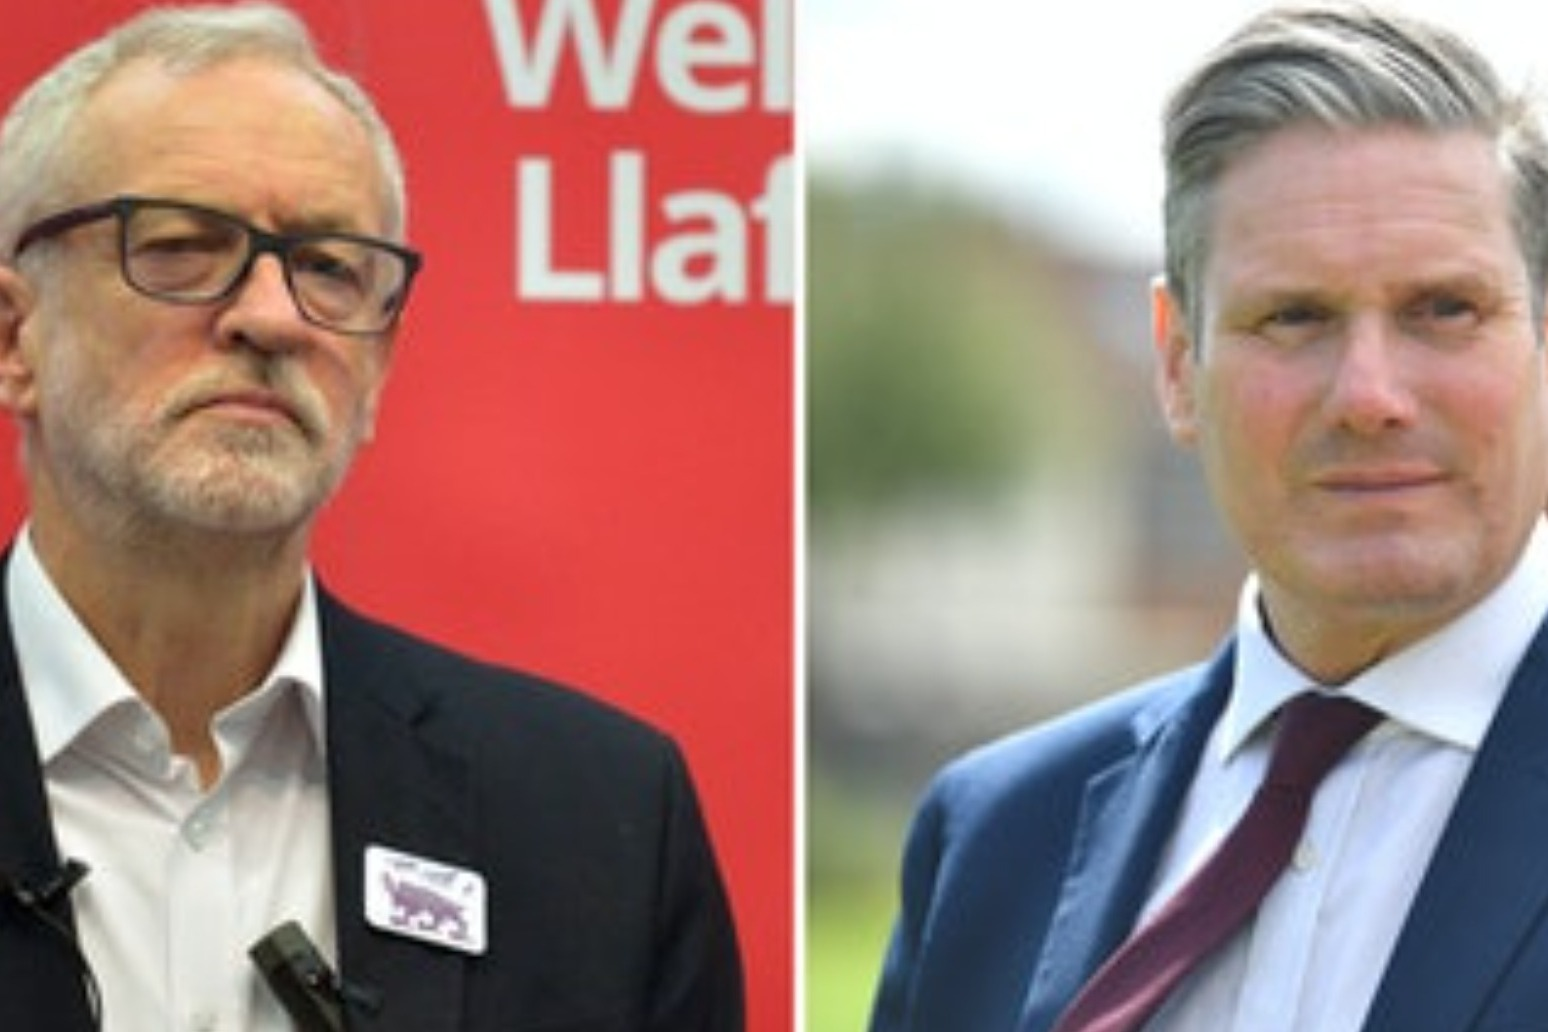 Jeremy Corbyn will not have Labour whip restored, Sir Keir Starmer says